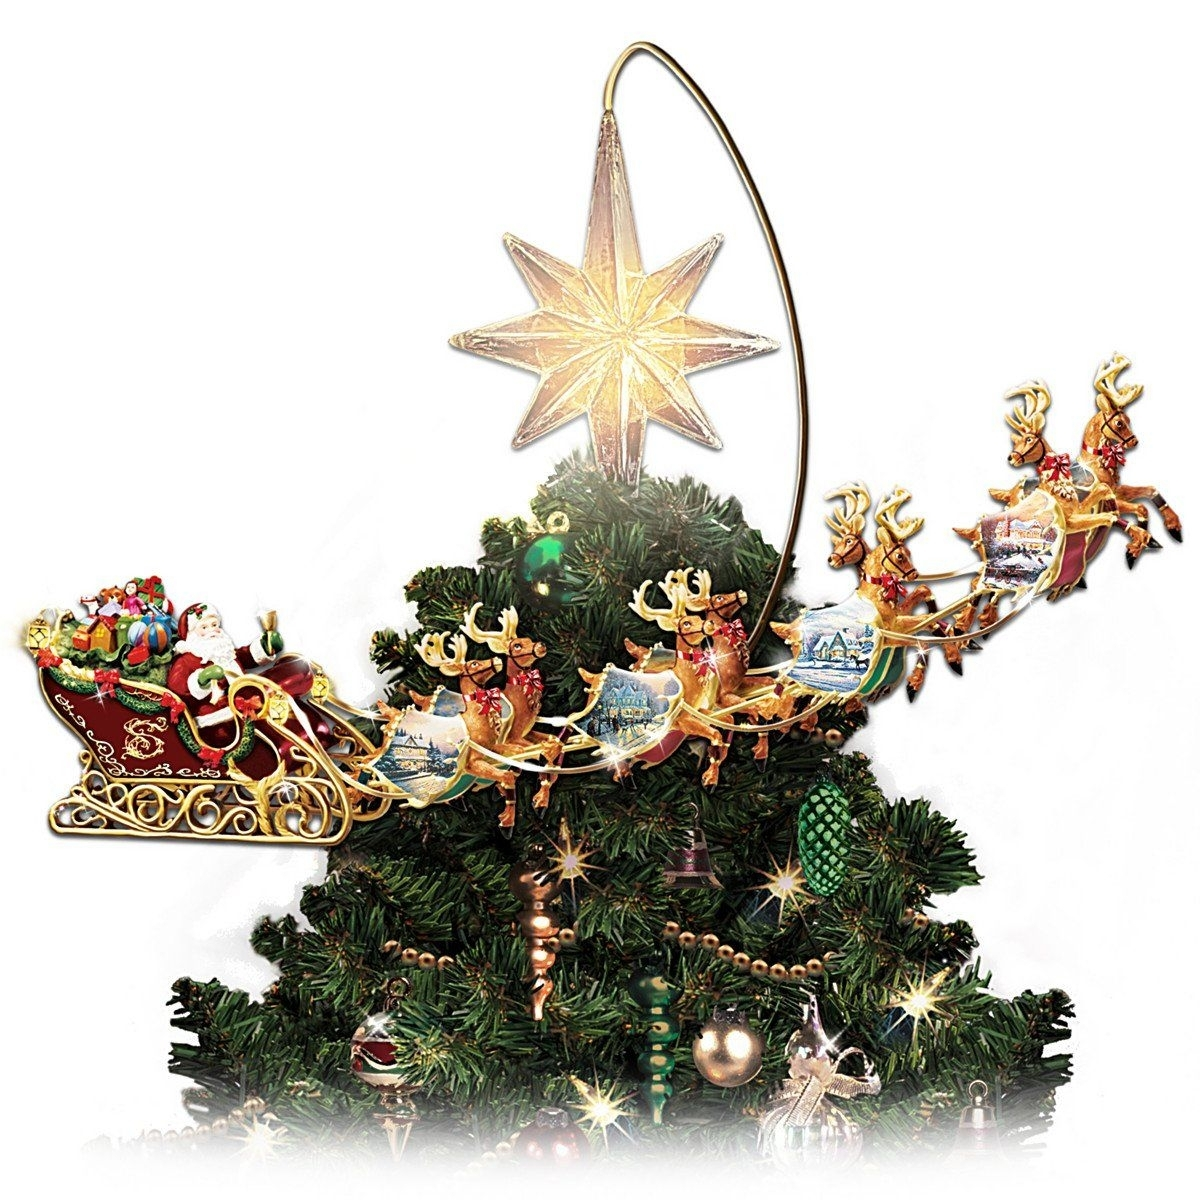 Unique Christmas Tree Toppers You Ll Love In 2021 Visualhunt